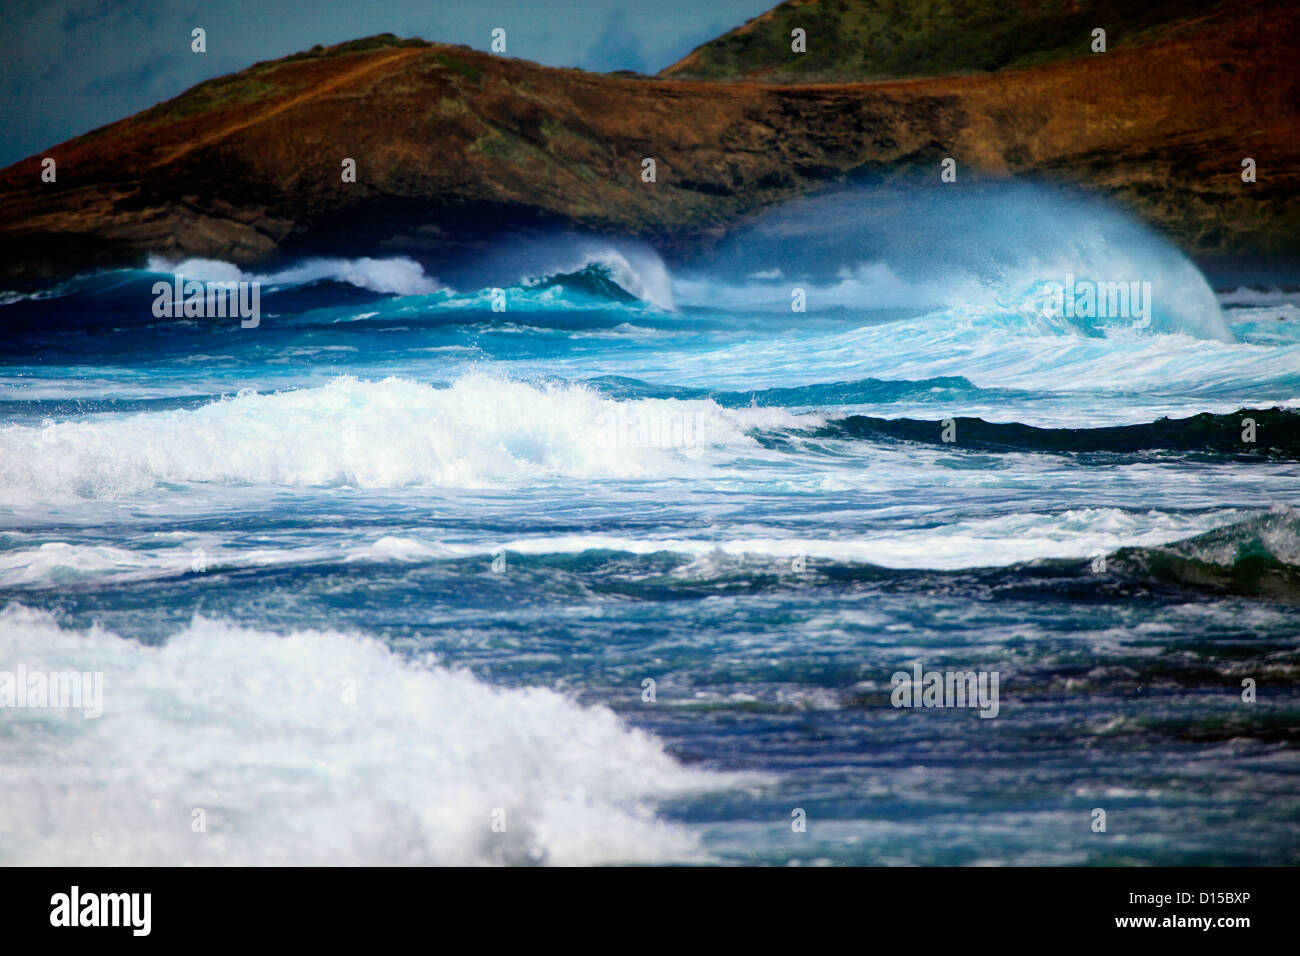 Hawaii, Oahu, Beautiful Wave Breaking, Shot Between Sandy's And Makapu'u. - Stock Image